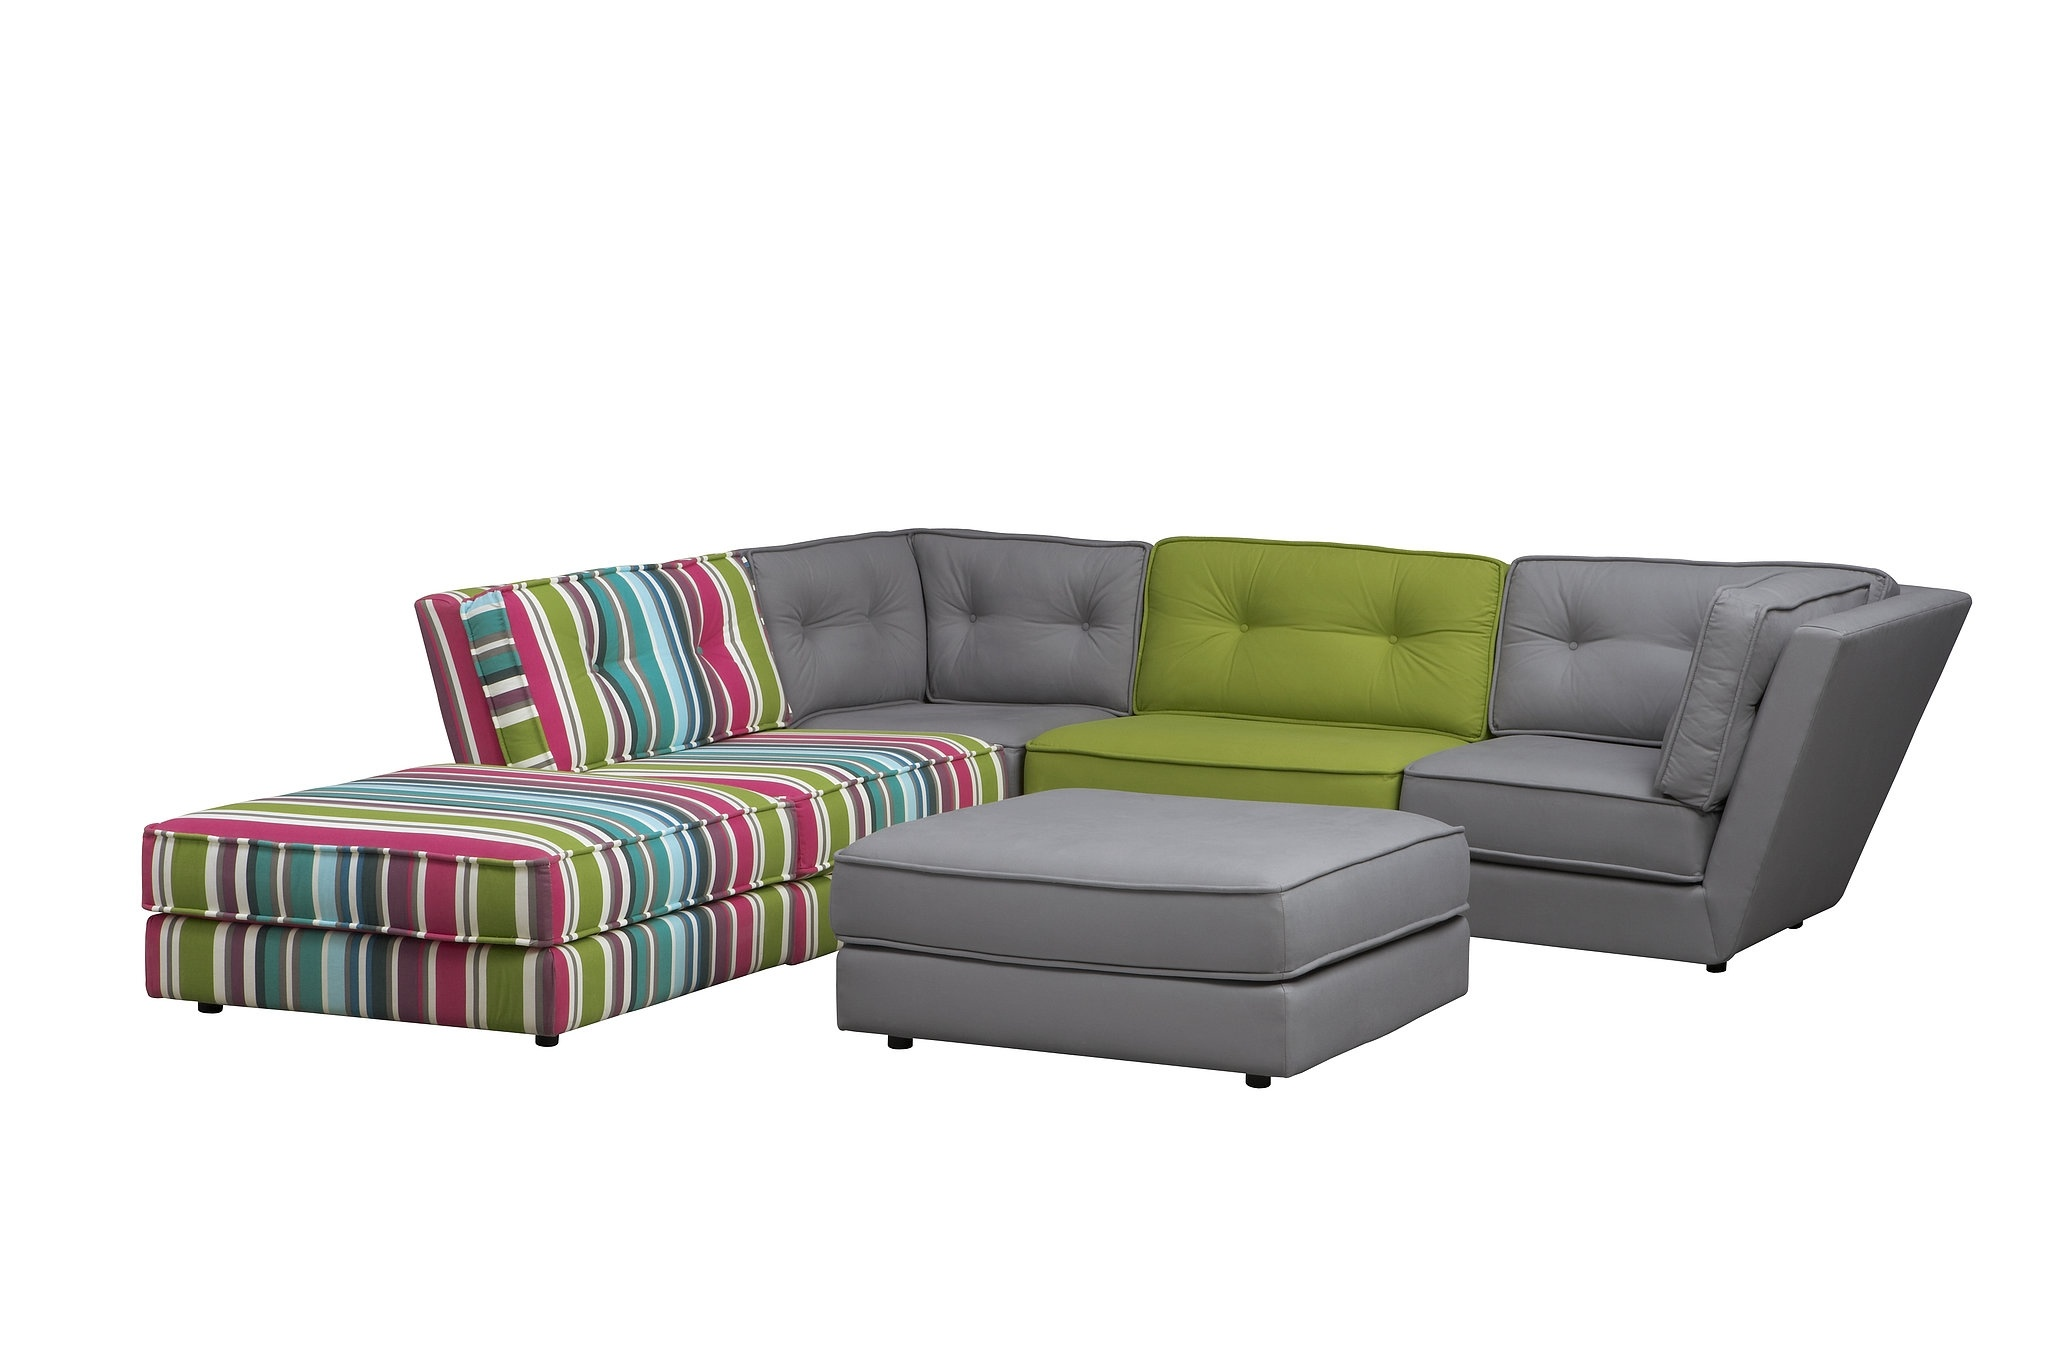 assorted brand color sectional sofa covers